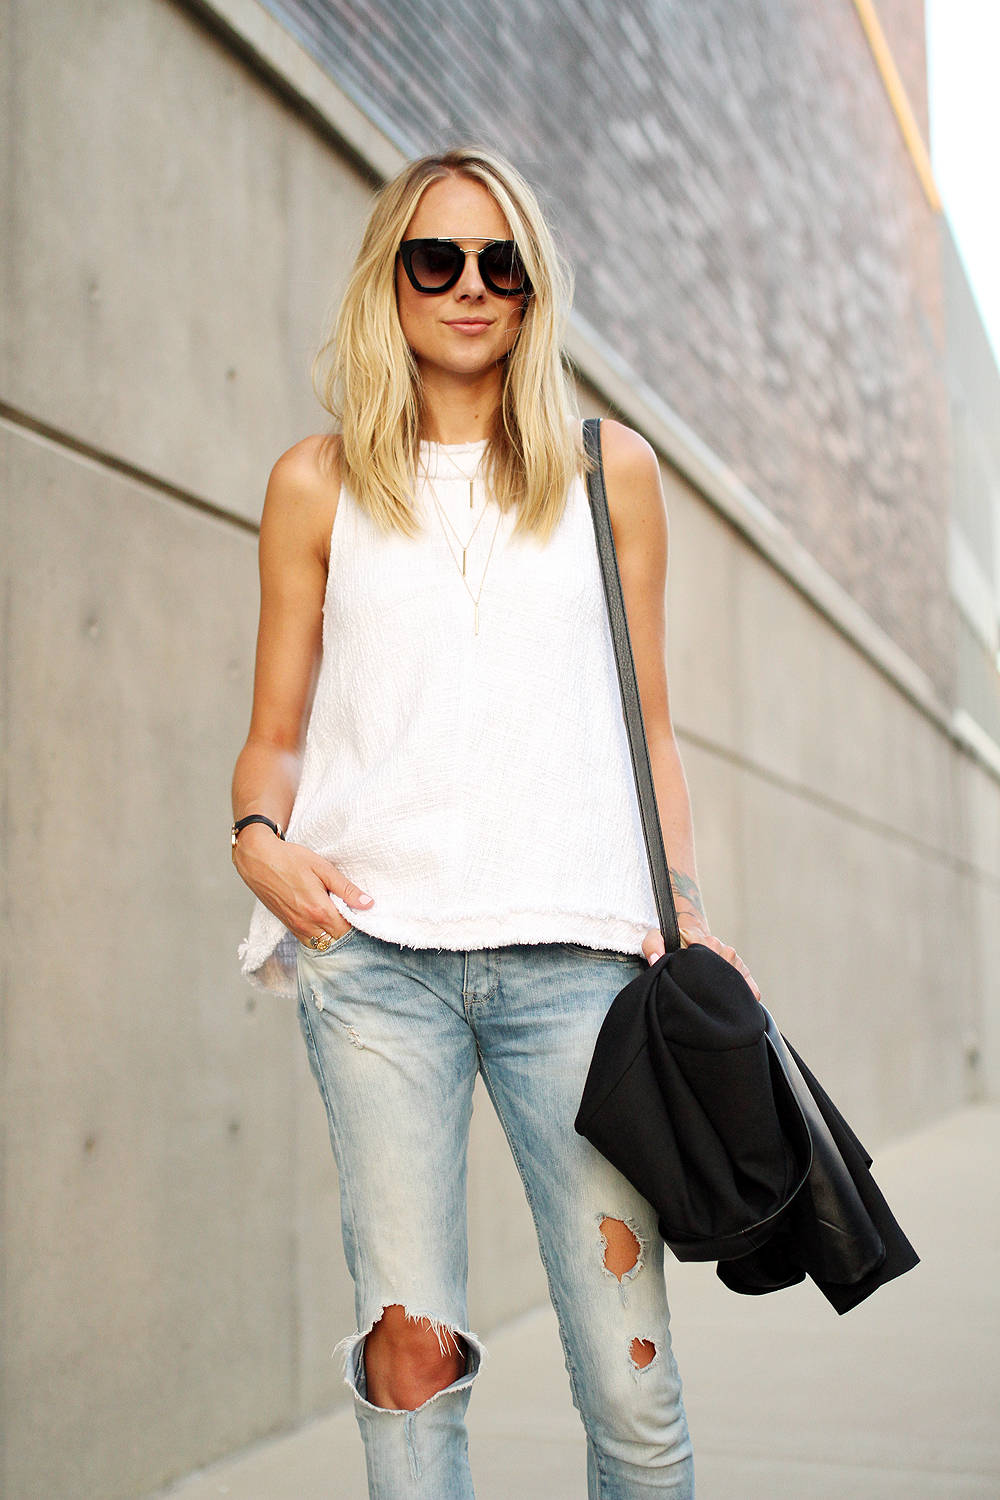 Top Fashion Trends 2014: FRINGED TWEED TOP